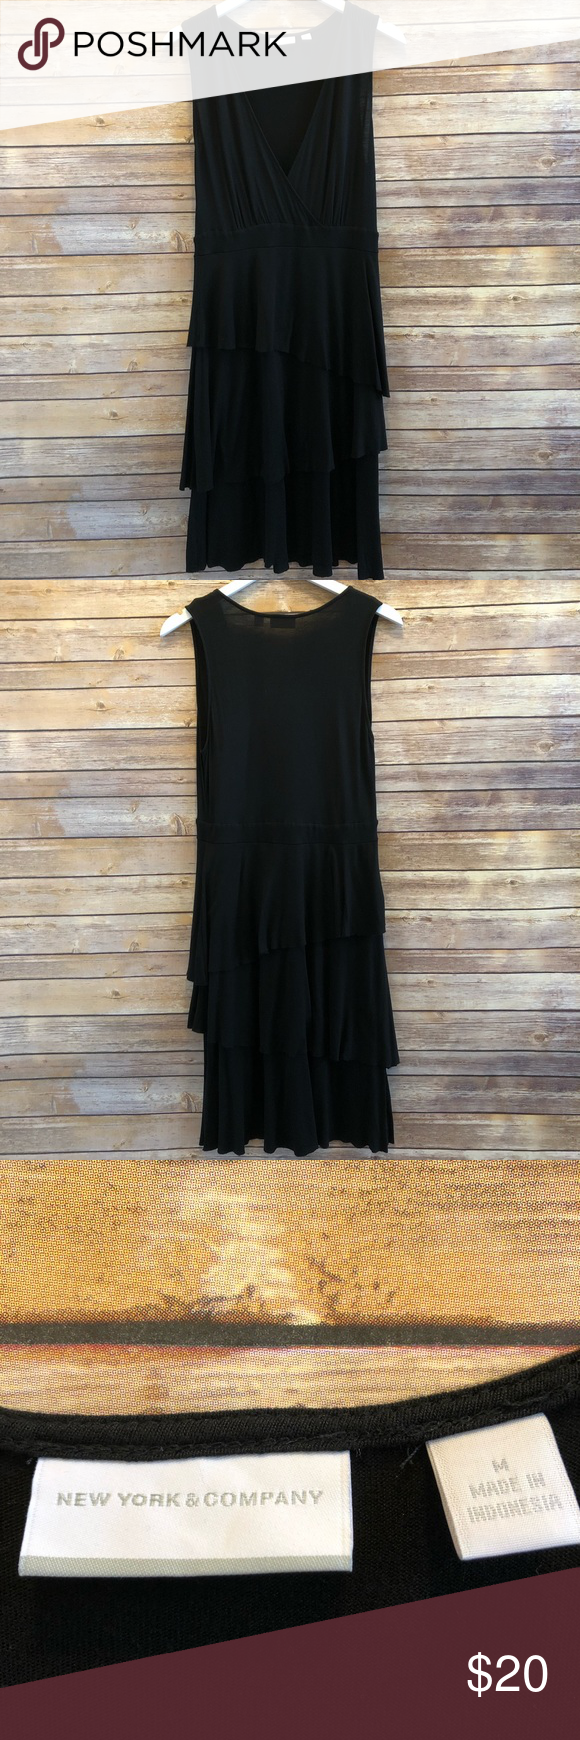 "New York & Company Sleeveless Dress Size Medium New York & Company sleeveless black dress.  Size Medium.  Excellent condition.  Only worn once.  Body 100% rayon.  Lining 100% polyester.  Machine wash, flat dry.  Measures approximately 17"" armpit to armpit, 40"" length. New York & Company Dresses #blacksleevelessdress"